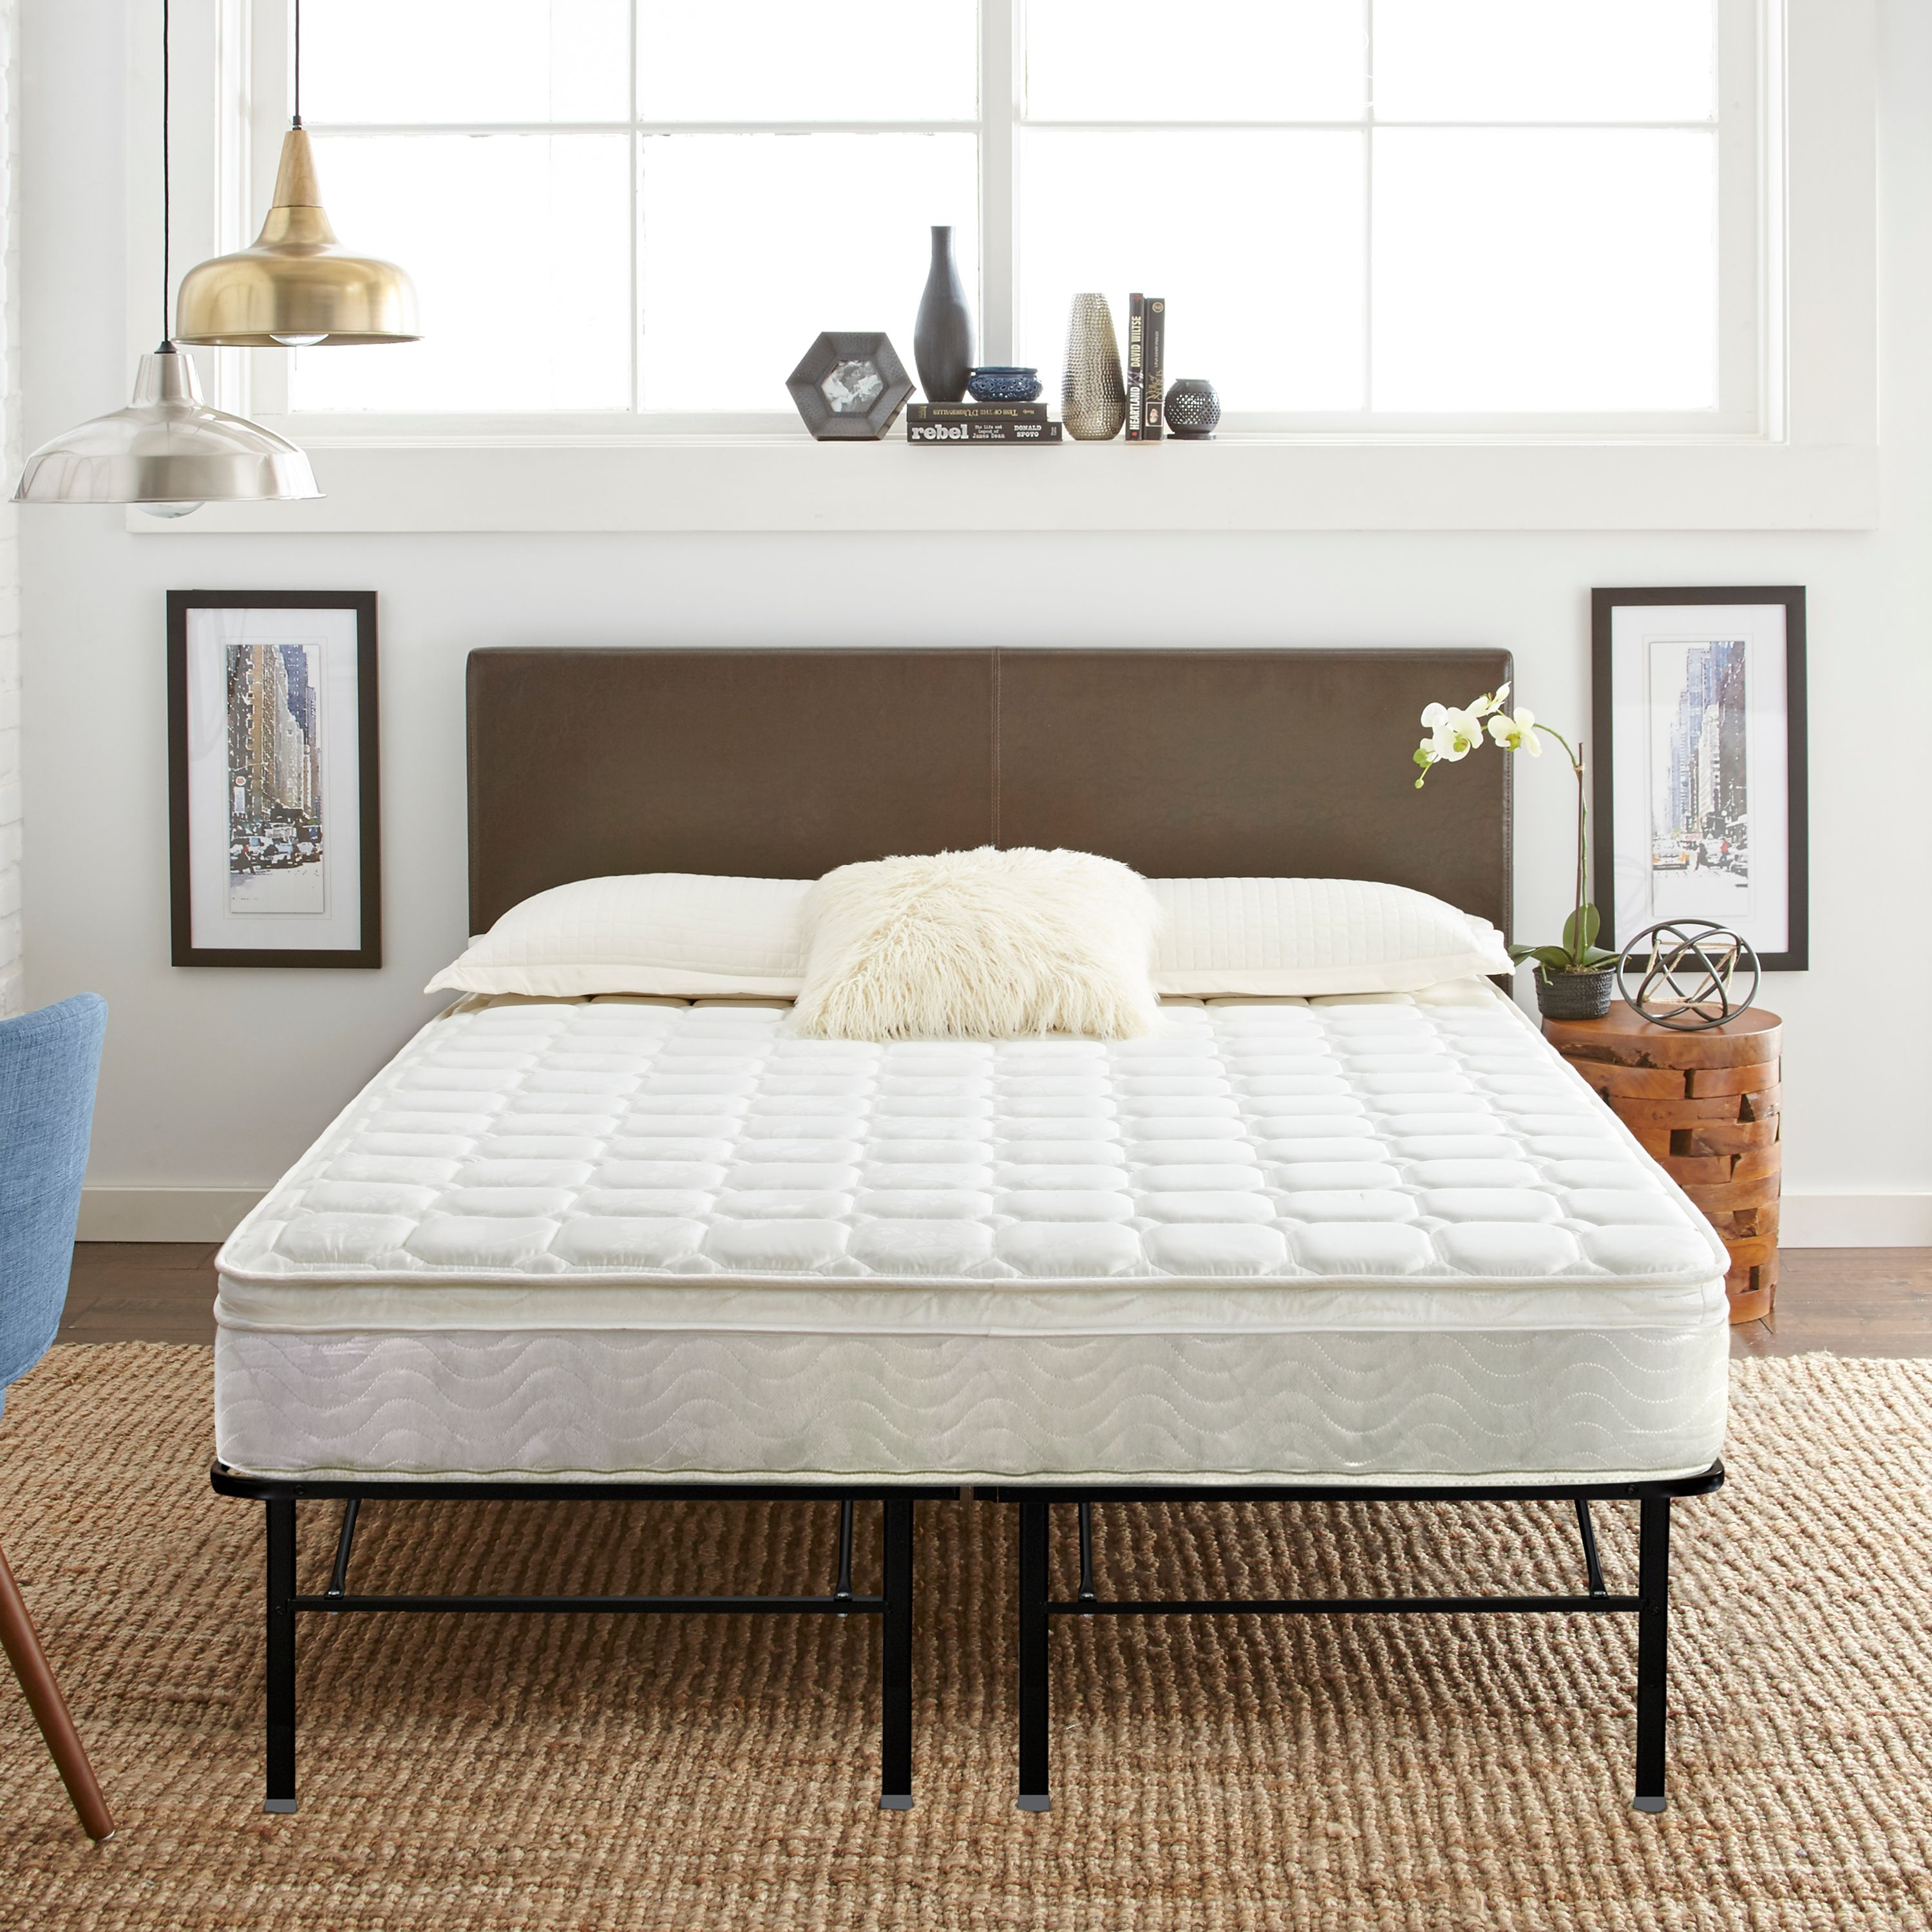 "Contura 8"" Hybrid Mattress plus Premier 18"" Platform Base Bed Frame Set, Multiple Sizes"